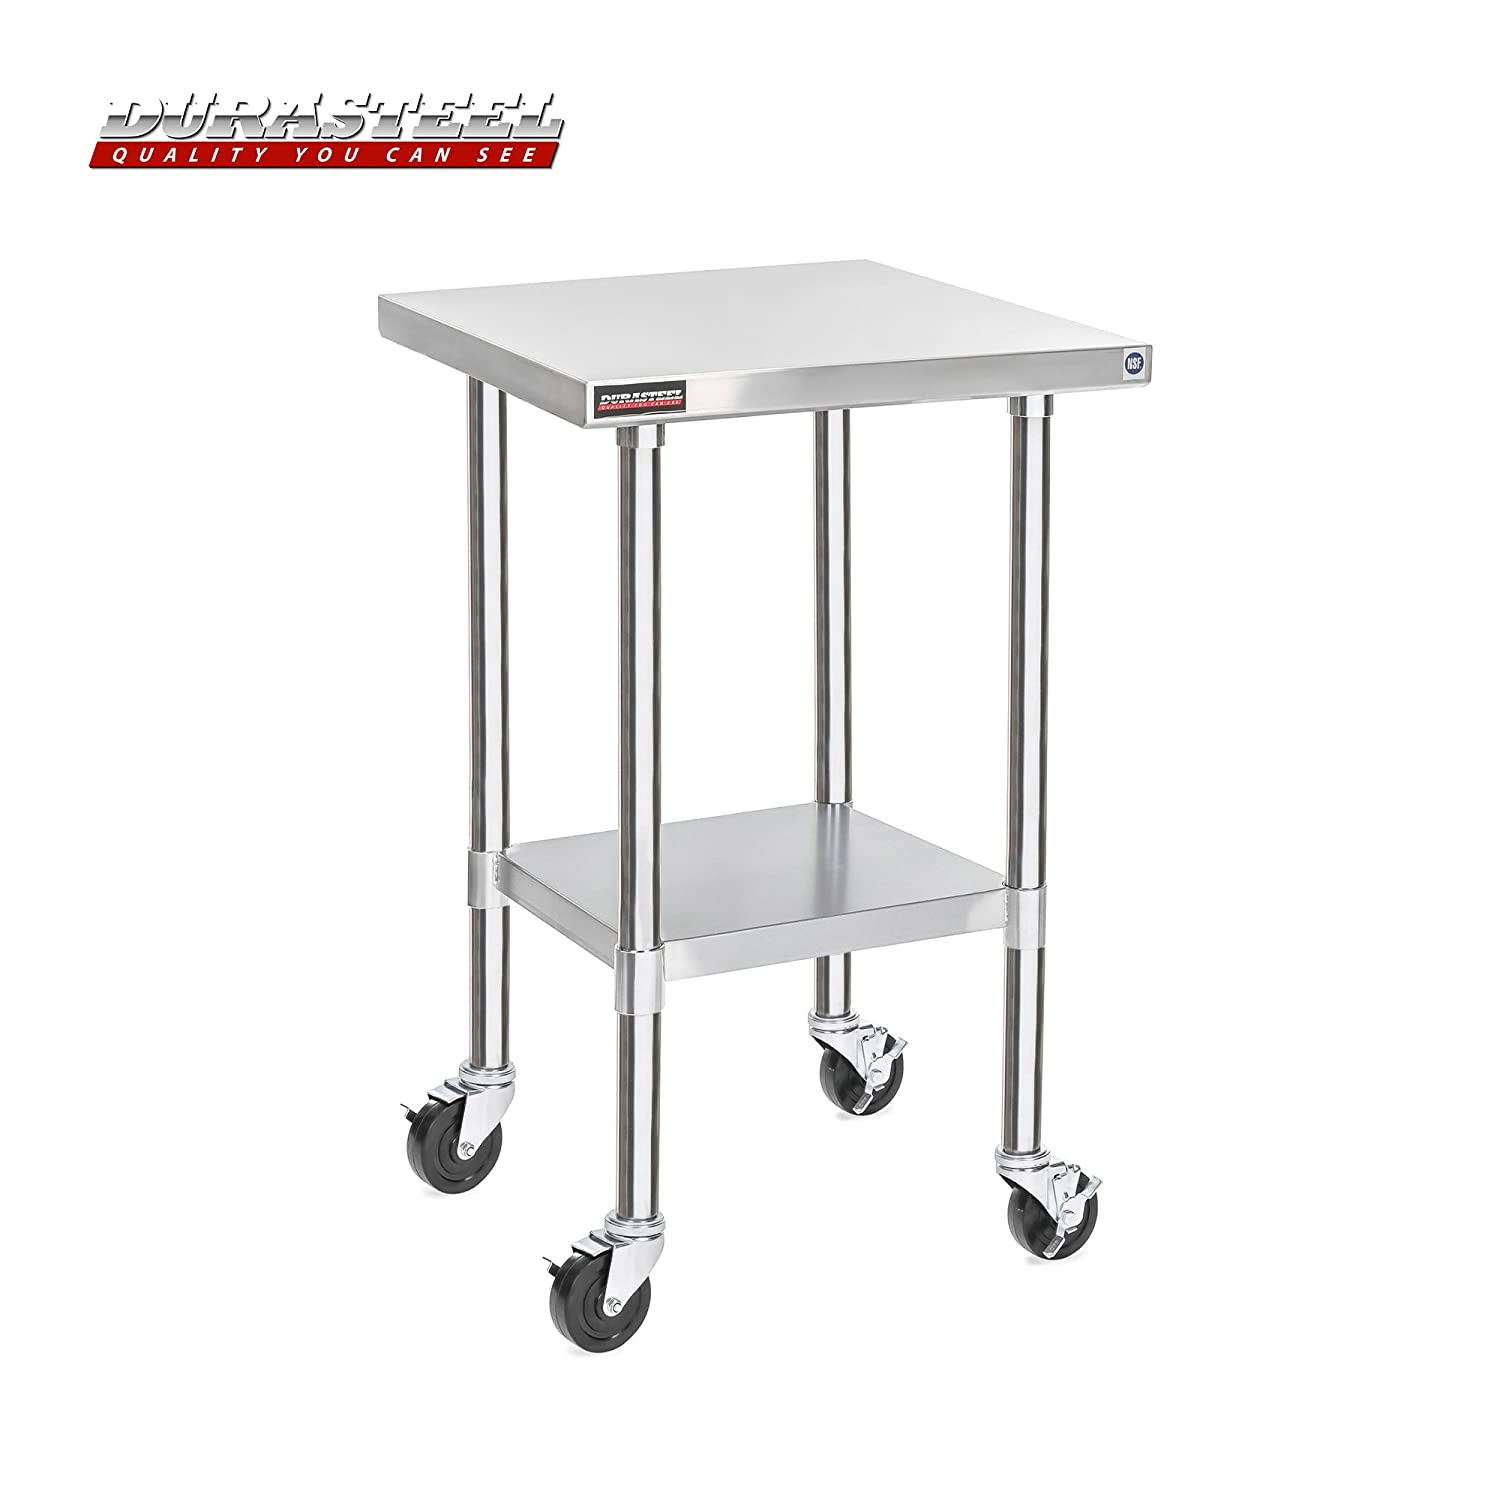 """DuraSteel Stainless Steel Work Table 24"""" x 24"""" x 34"""" Height w/ 4 Caster Wheels -Food Prep Commercial Grade Worktable - NSF Certified - Good For Restaurant, Business, Warehouse, Home, Kitchen, Garage"""